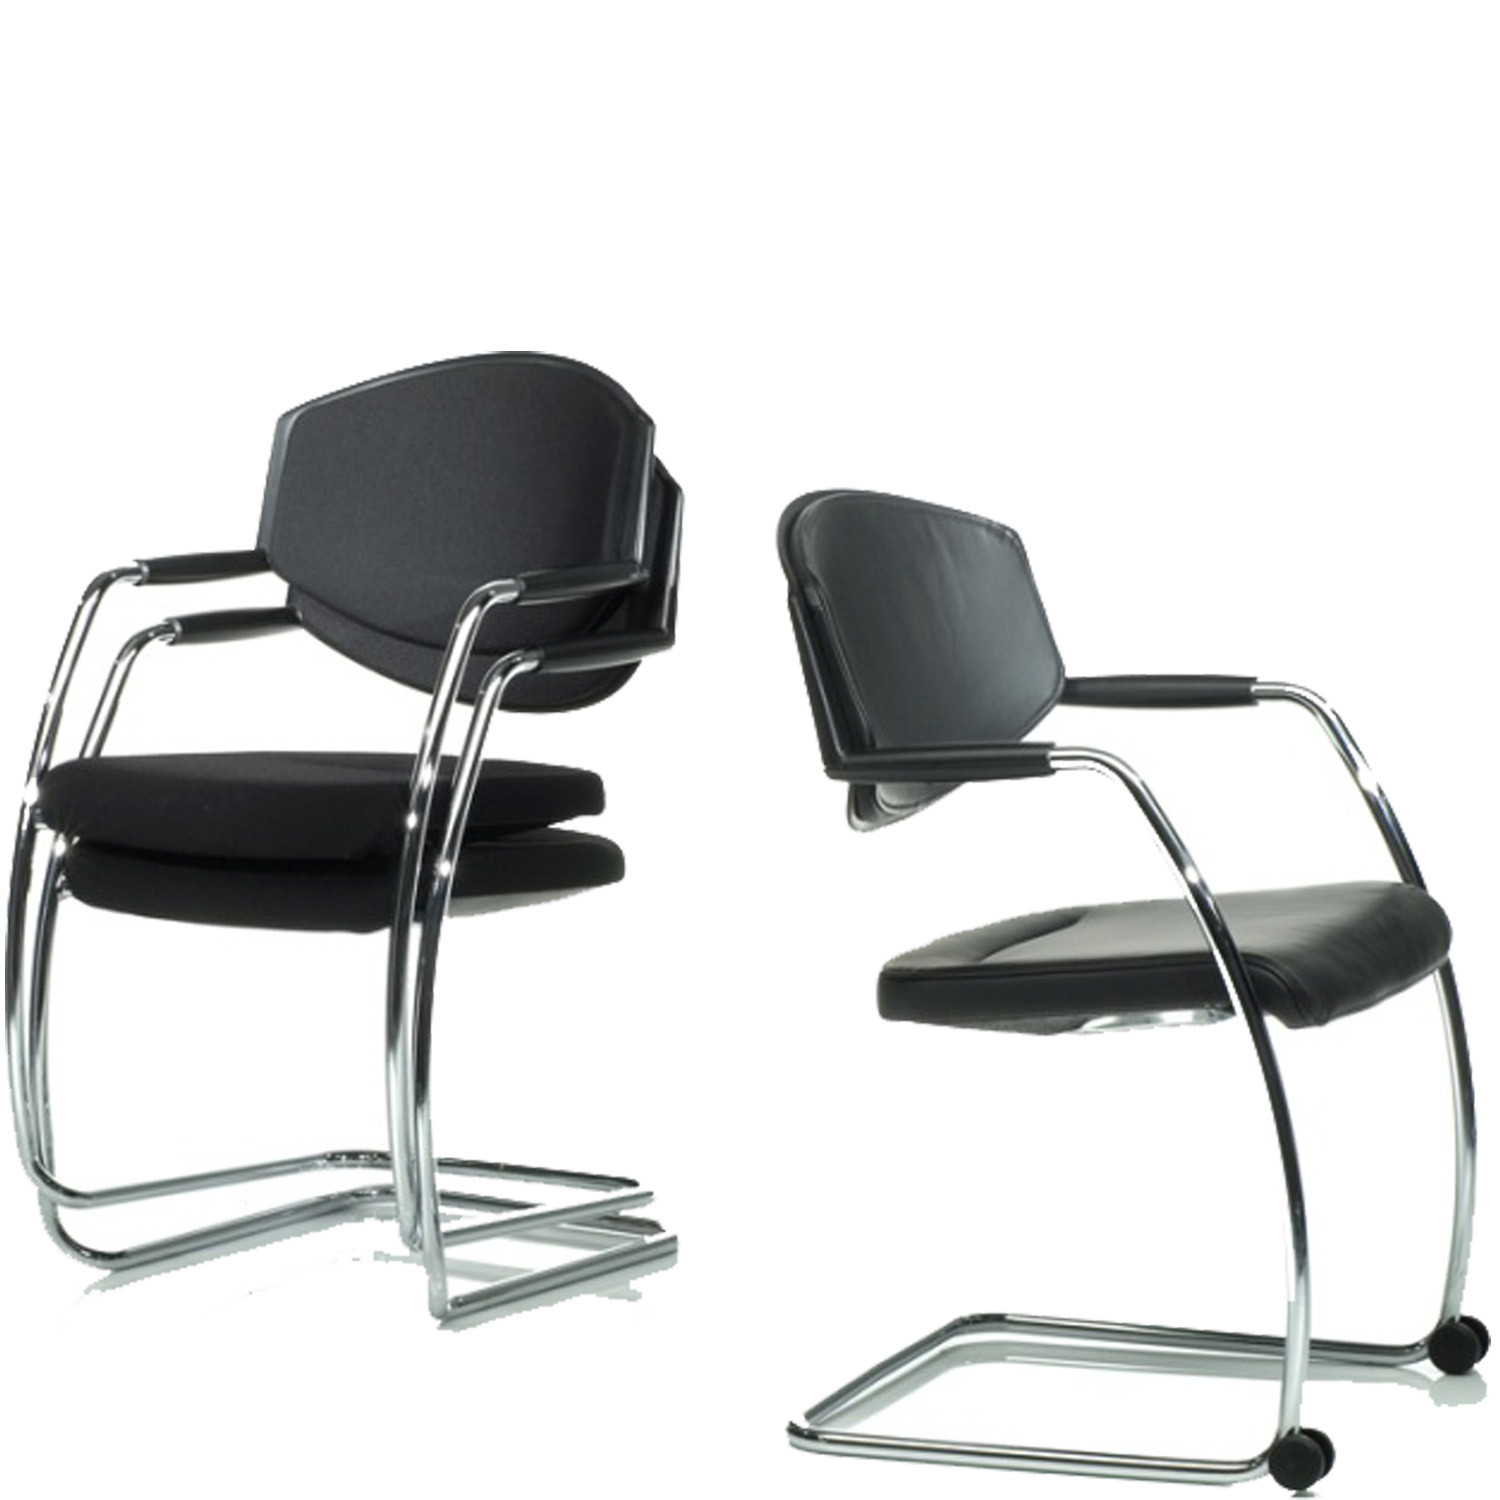 G16 Giroflex Meeting Chairs from Orangebox